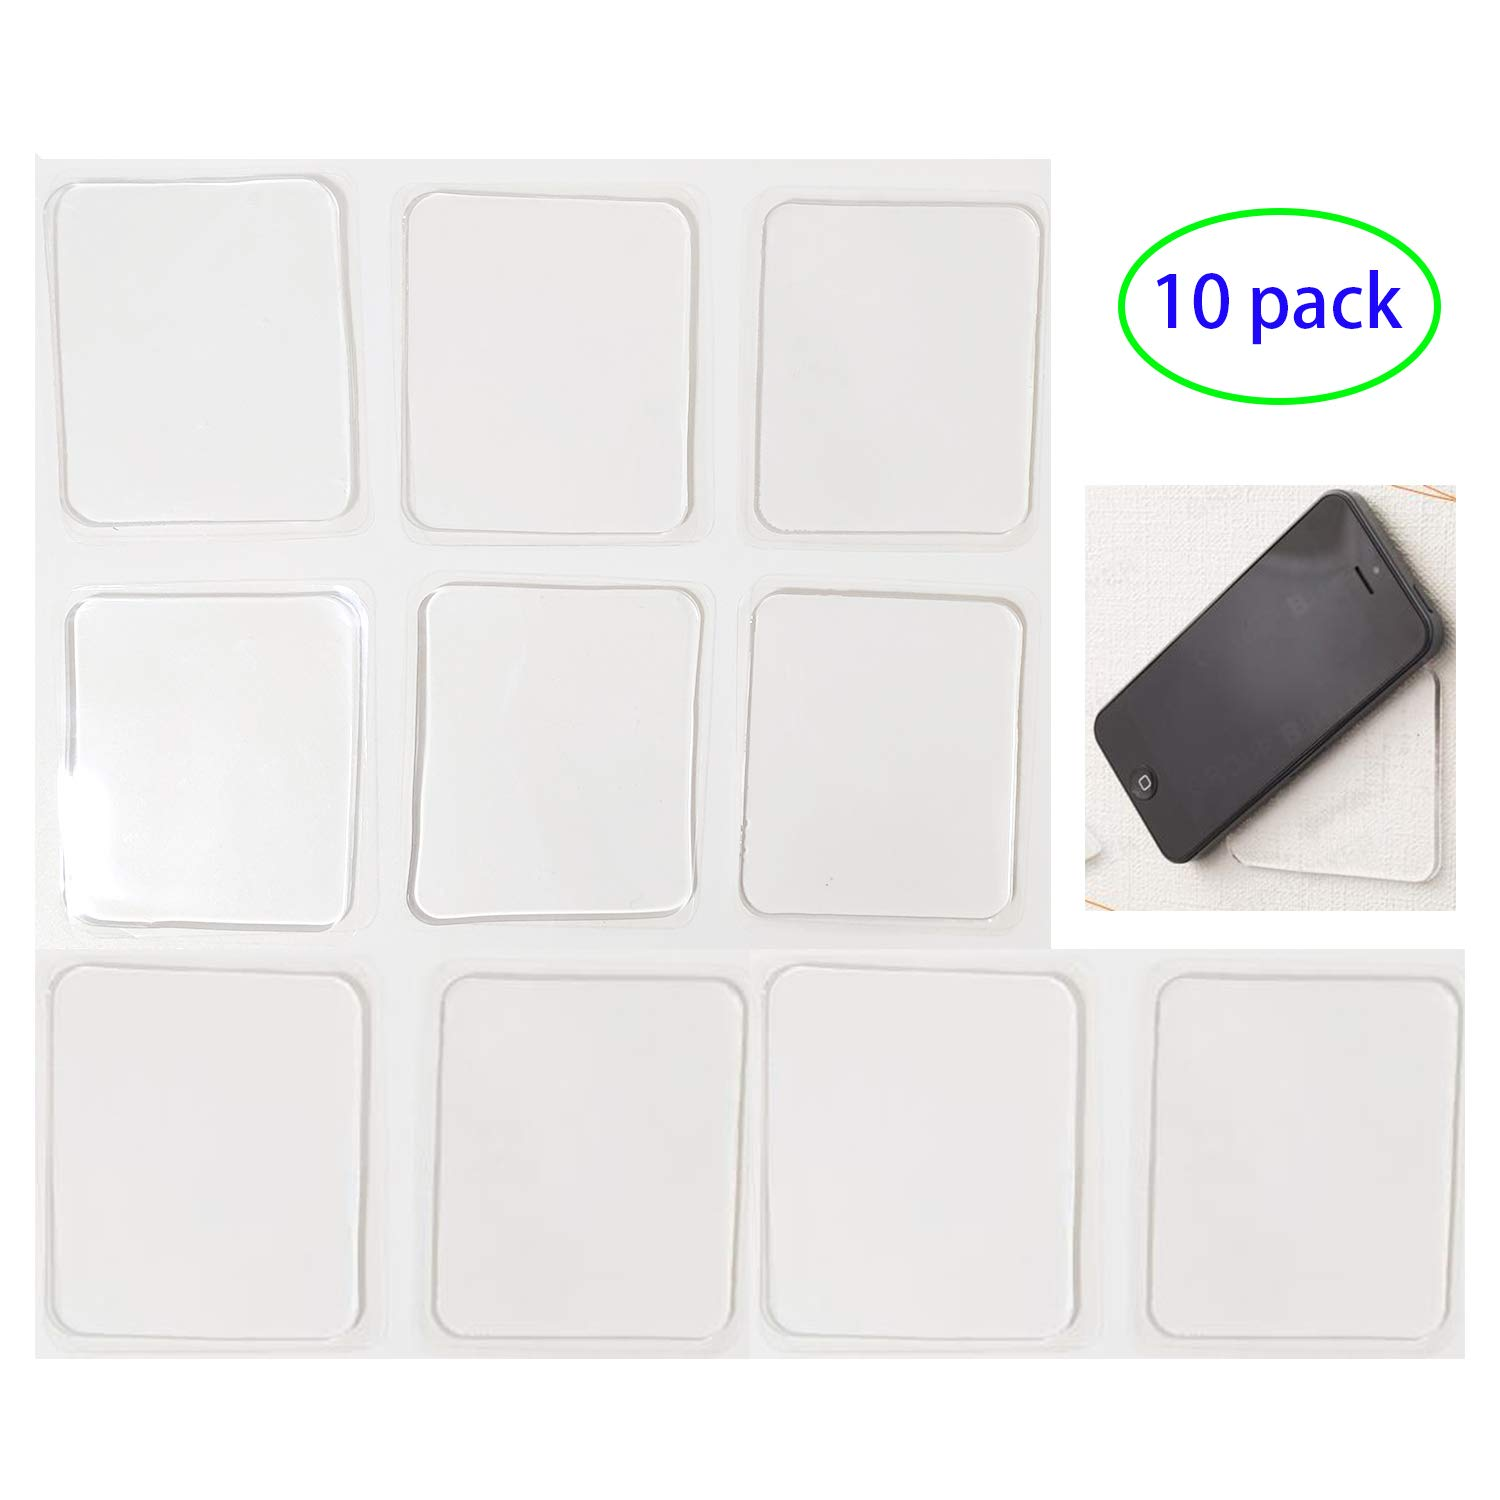 LIEN Super Sticky Gripping Pads Clear Silicone Gel Pads Durable Washable Anti-Slip Gel Pads for Car,Home,Cell Phone and Accessories by Lien